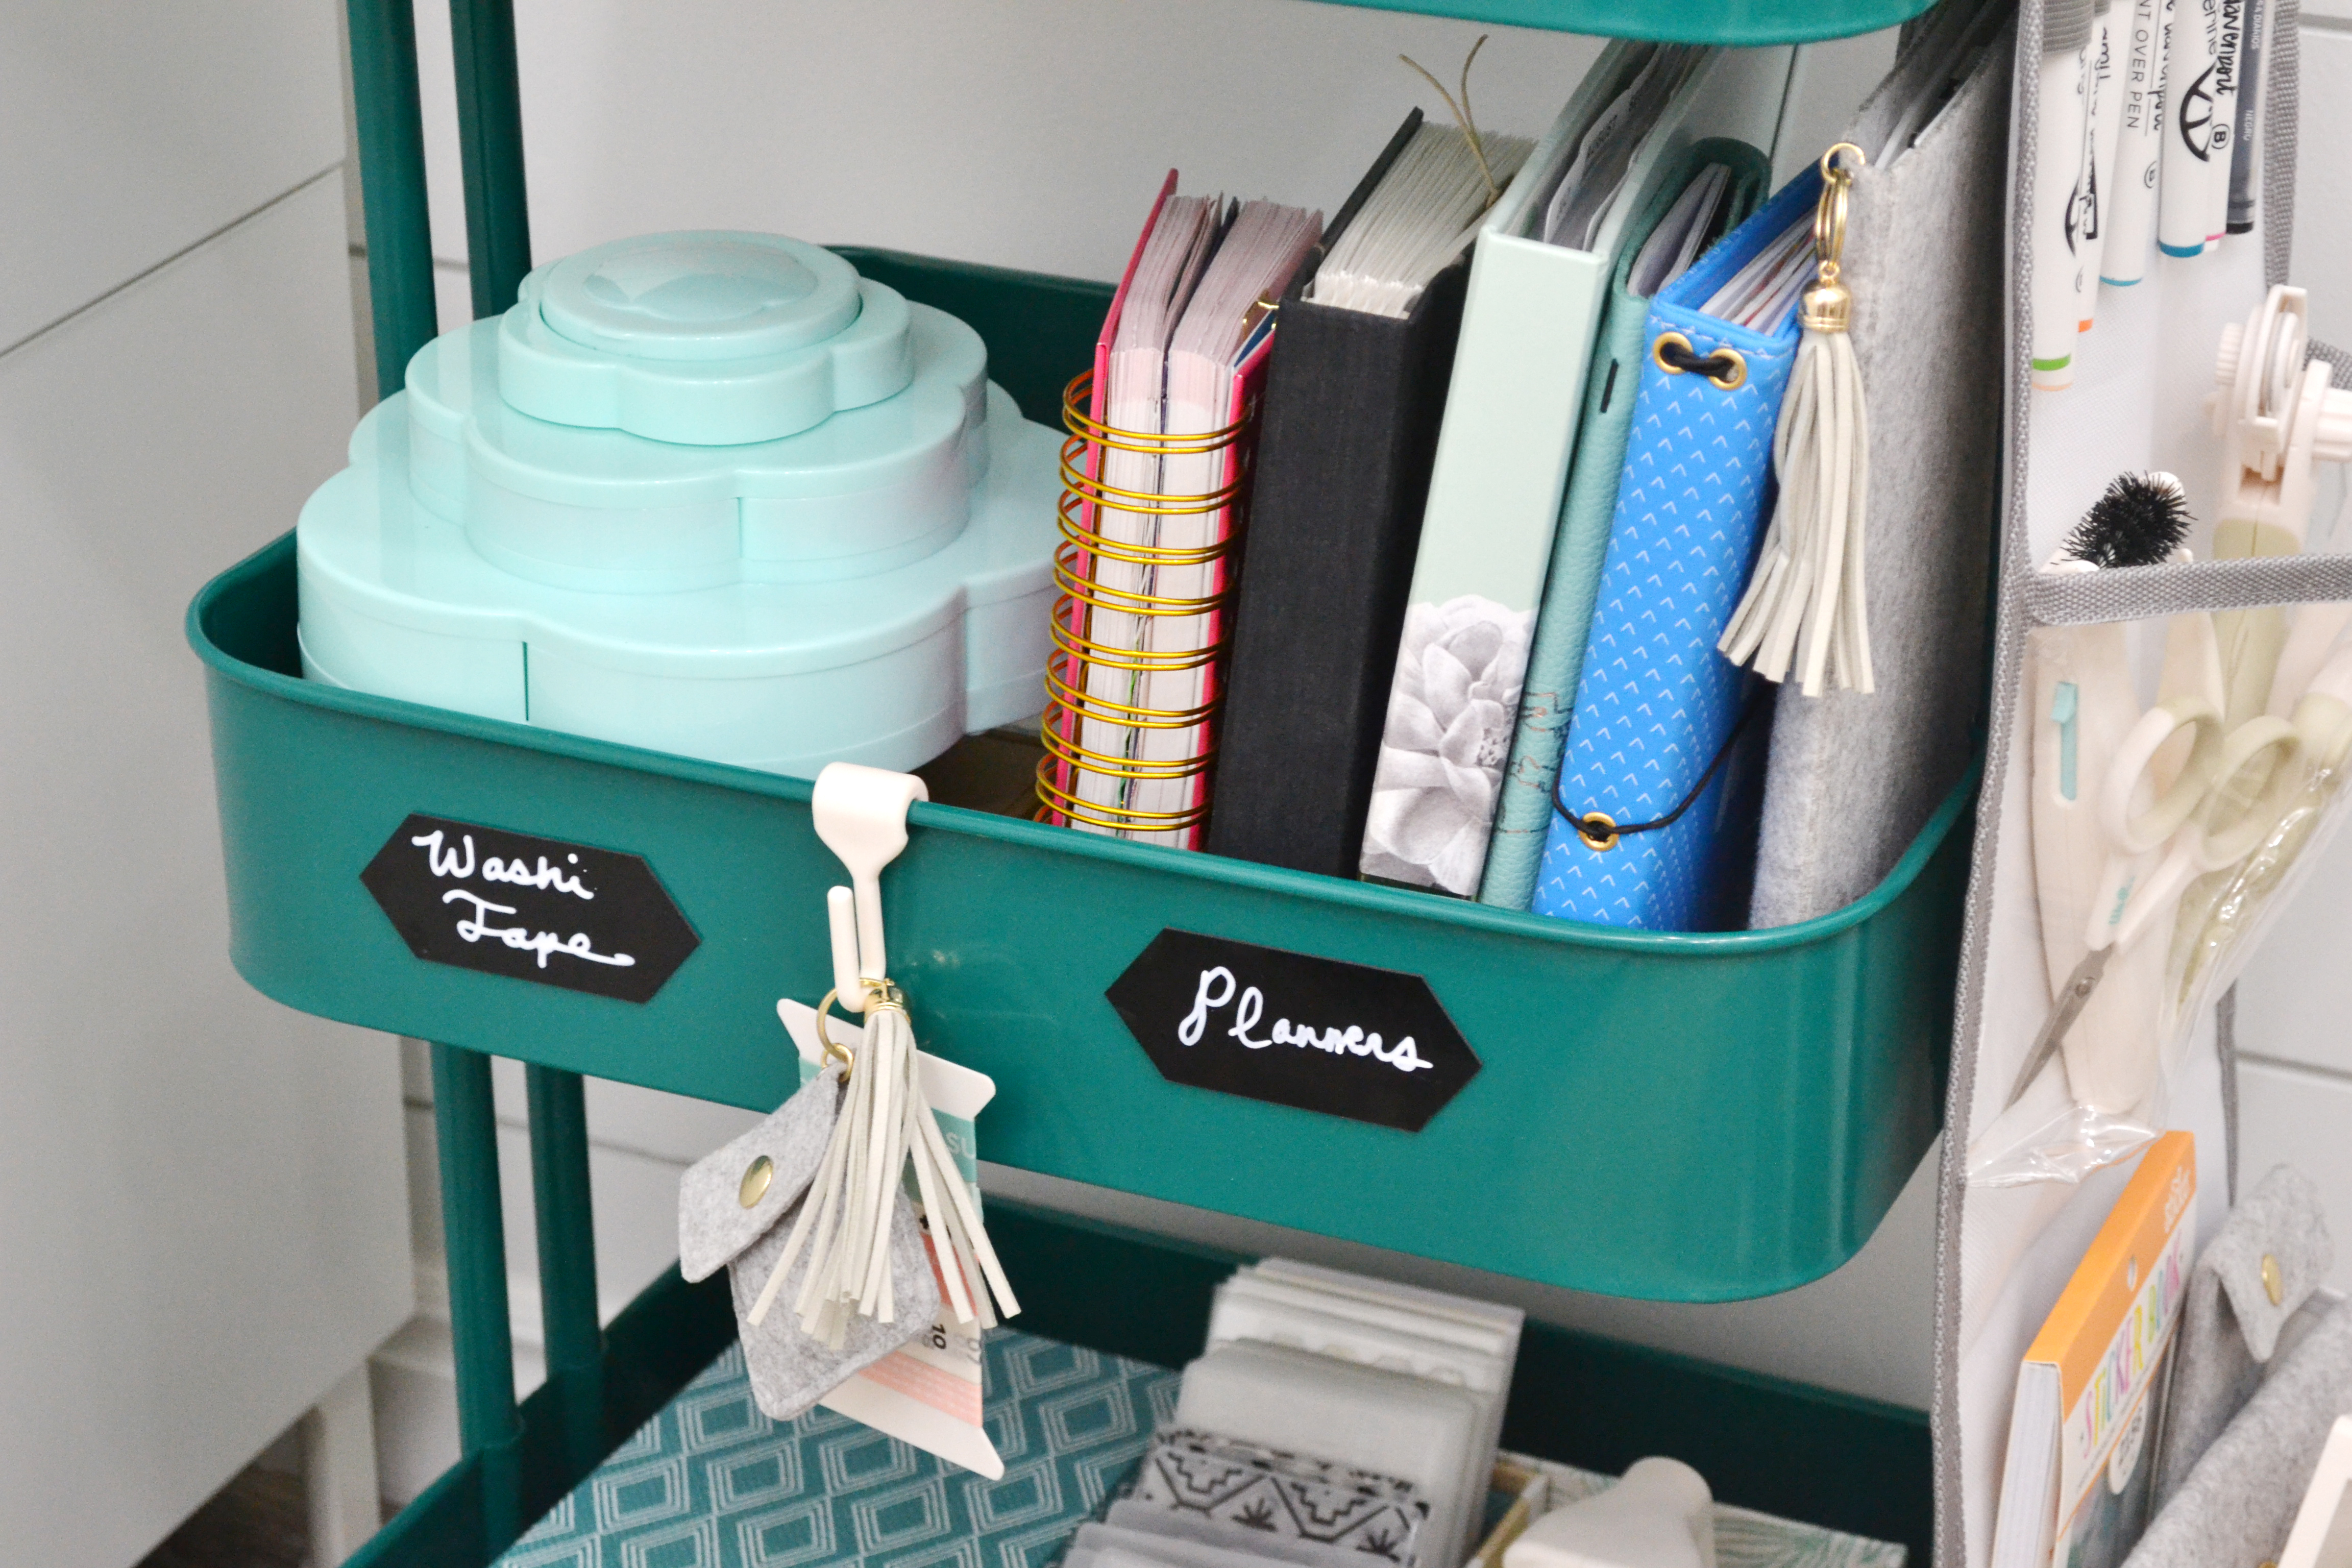 A La Cart storage cart by Aly Dosdall for We R Memory Keepers